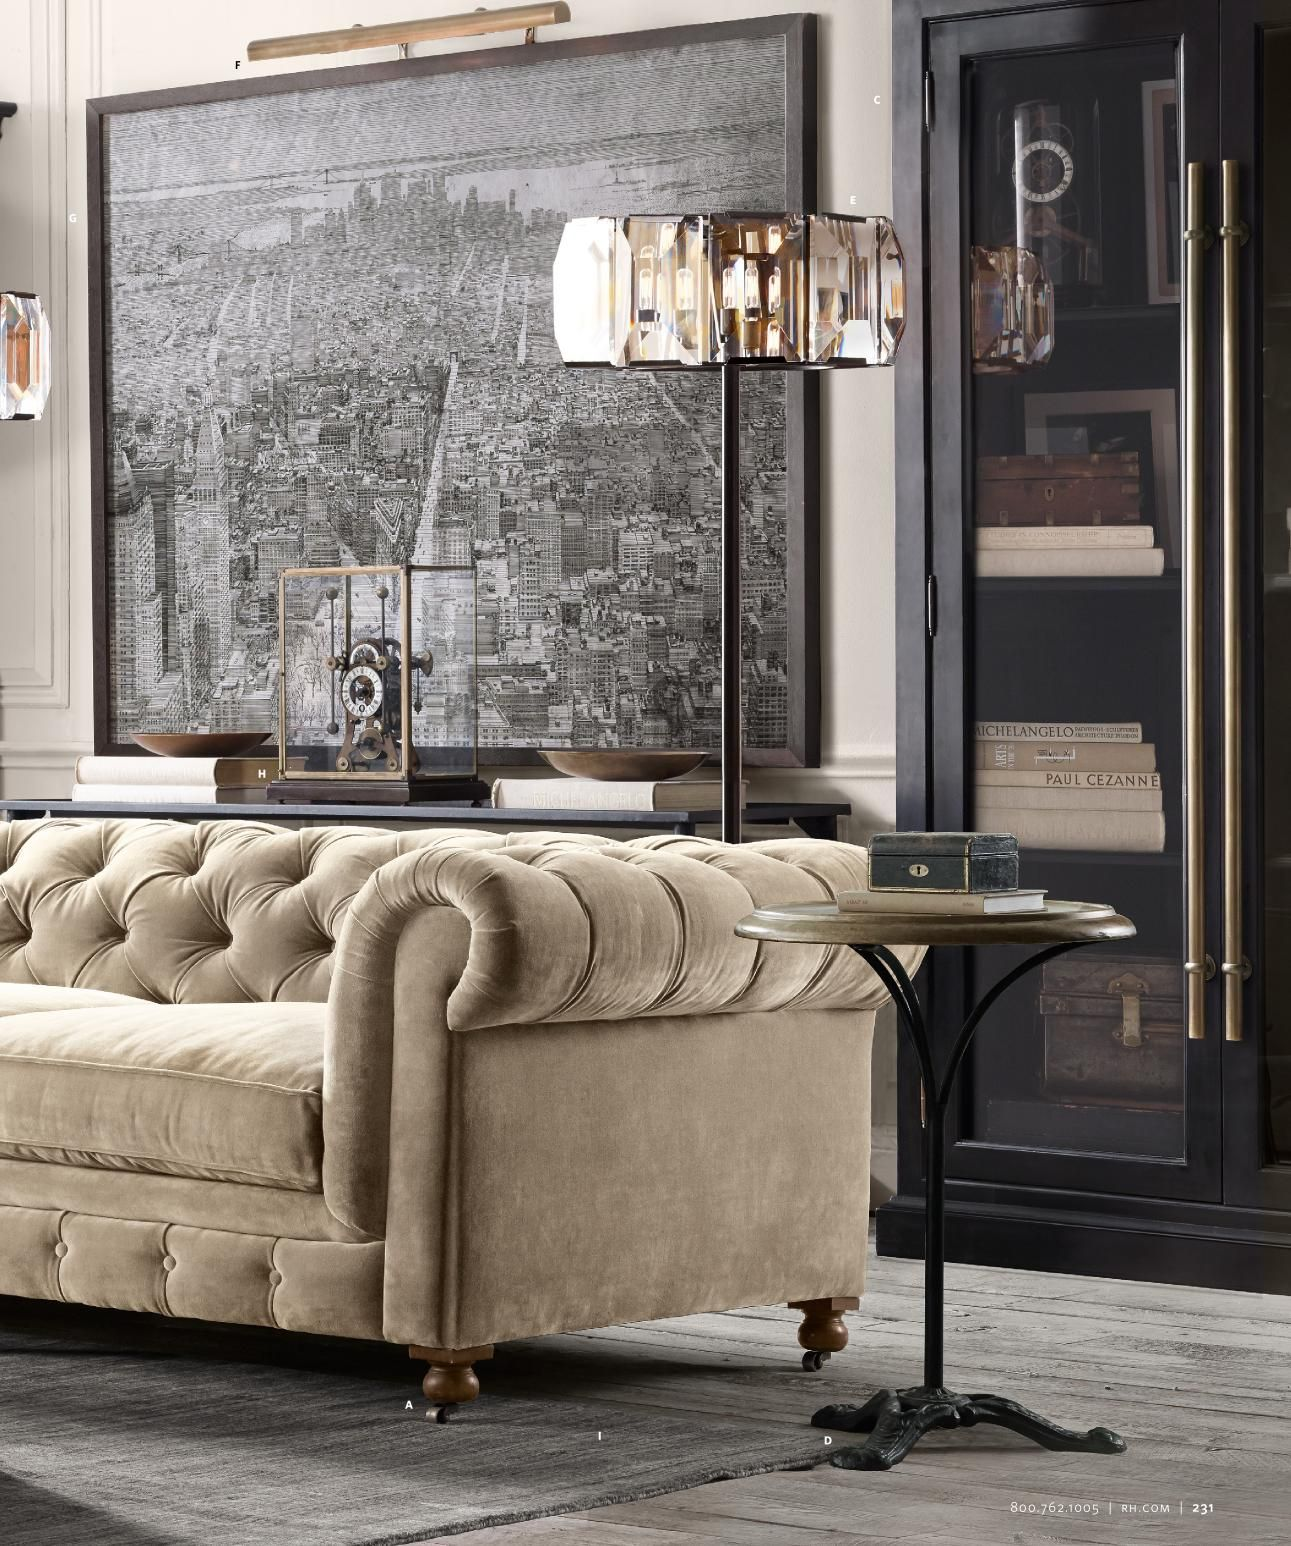 Art Deco And American Industrial Style In Harmony Restoration Hardware Source Books Love The Sofa But Not Brown